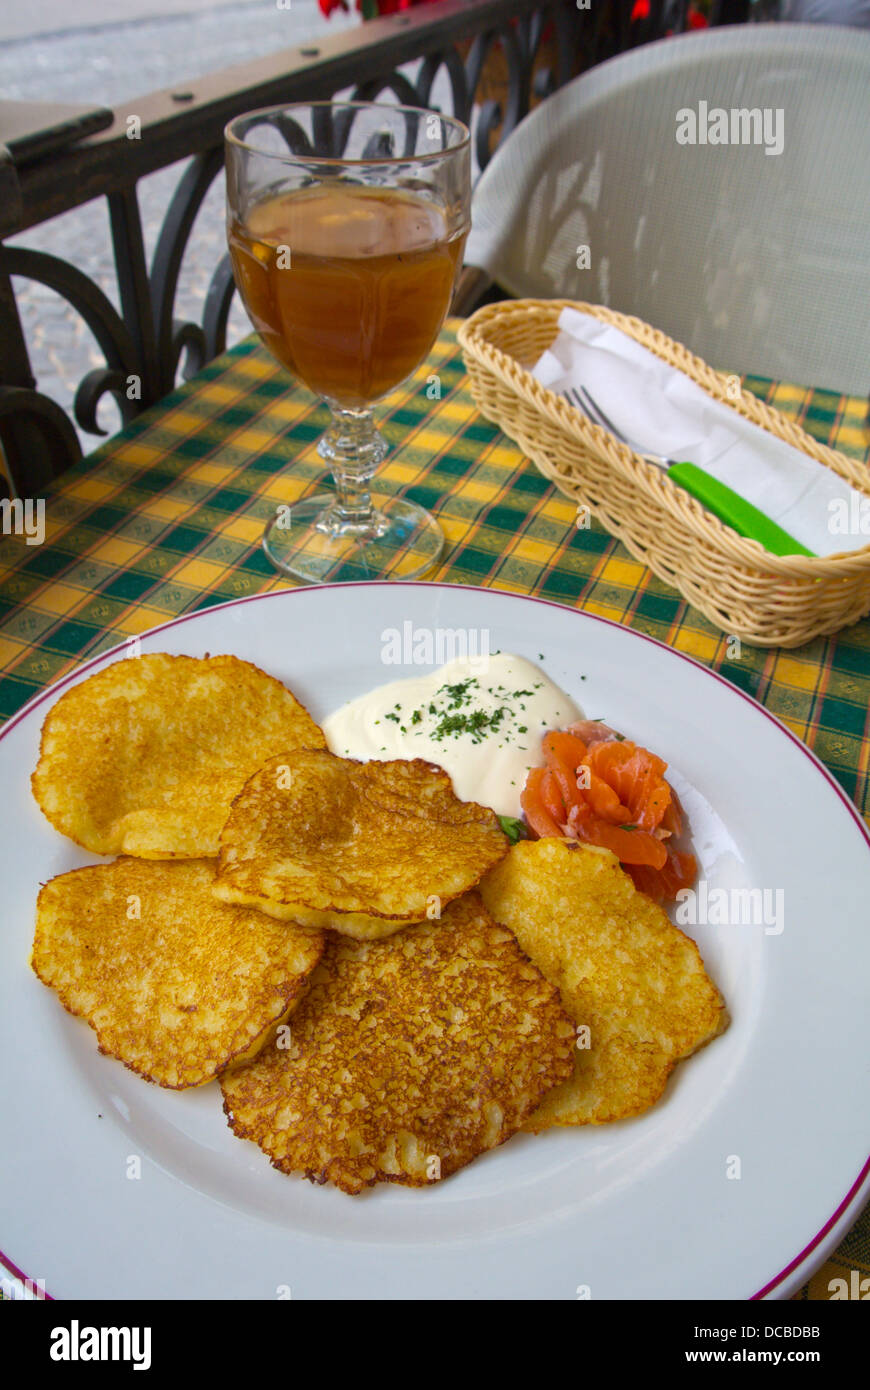 Local cuisine savory pancakes with salmon and kvass beverage in restaurant Vilnius Lithuania Europe - Stock Image